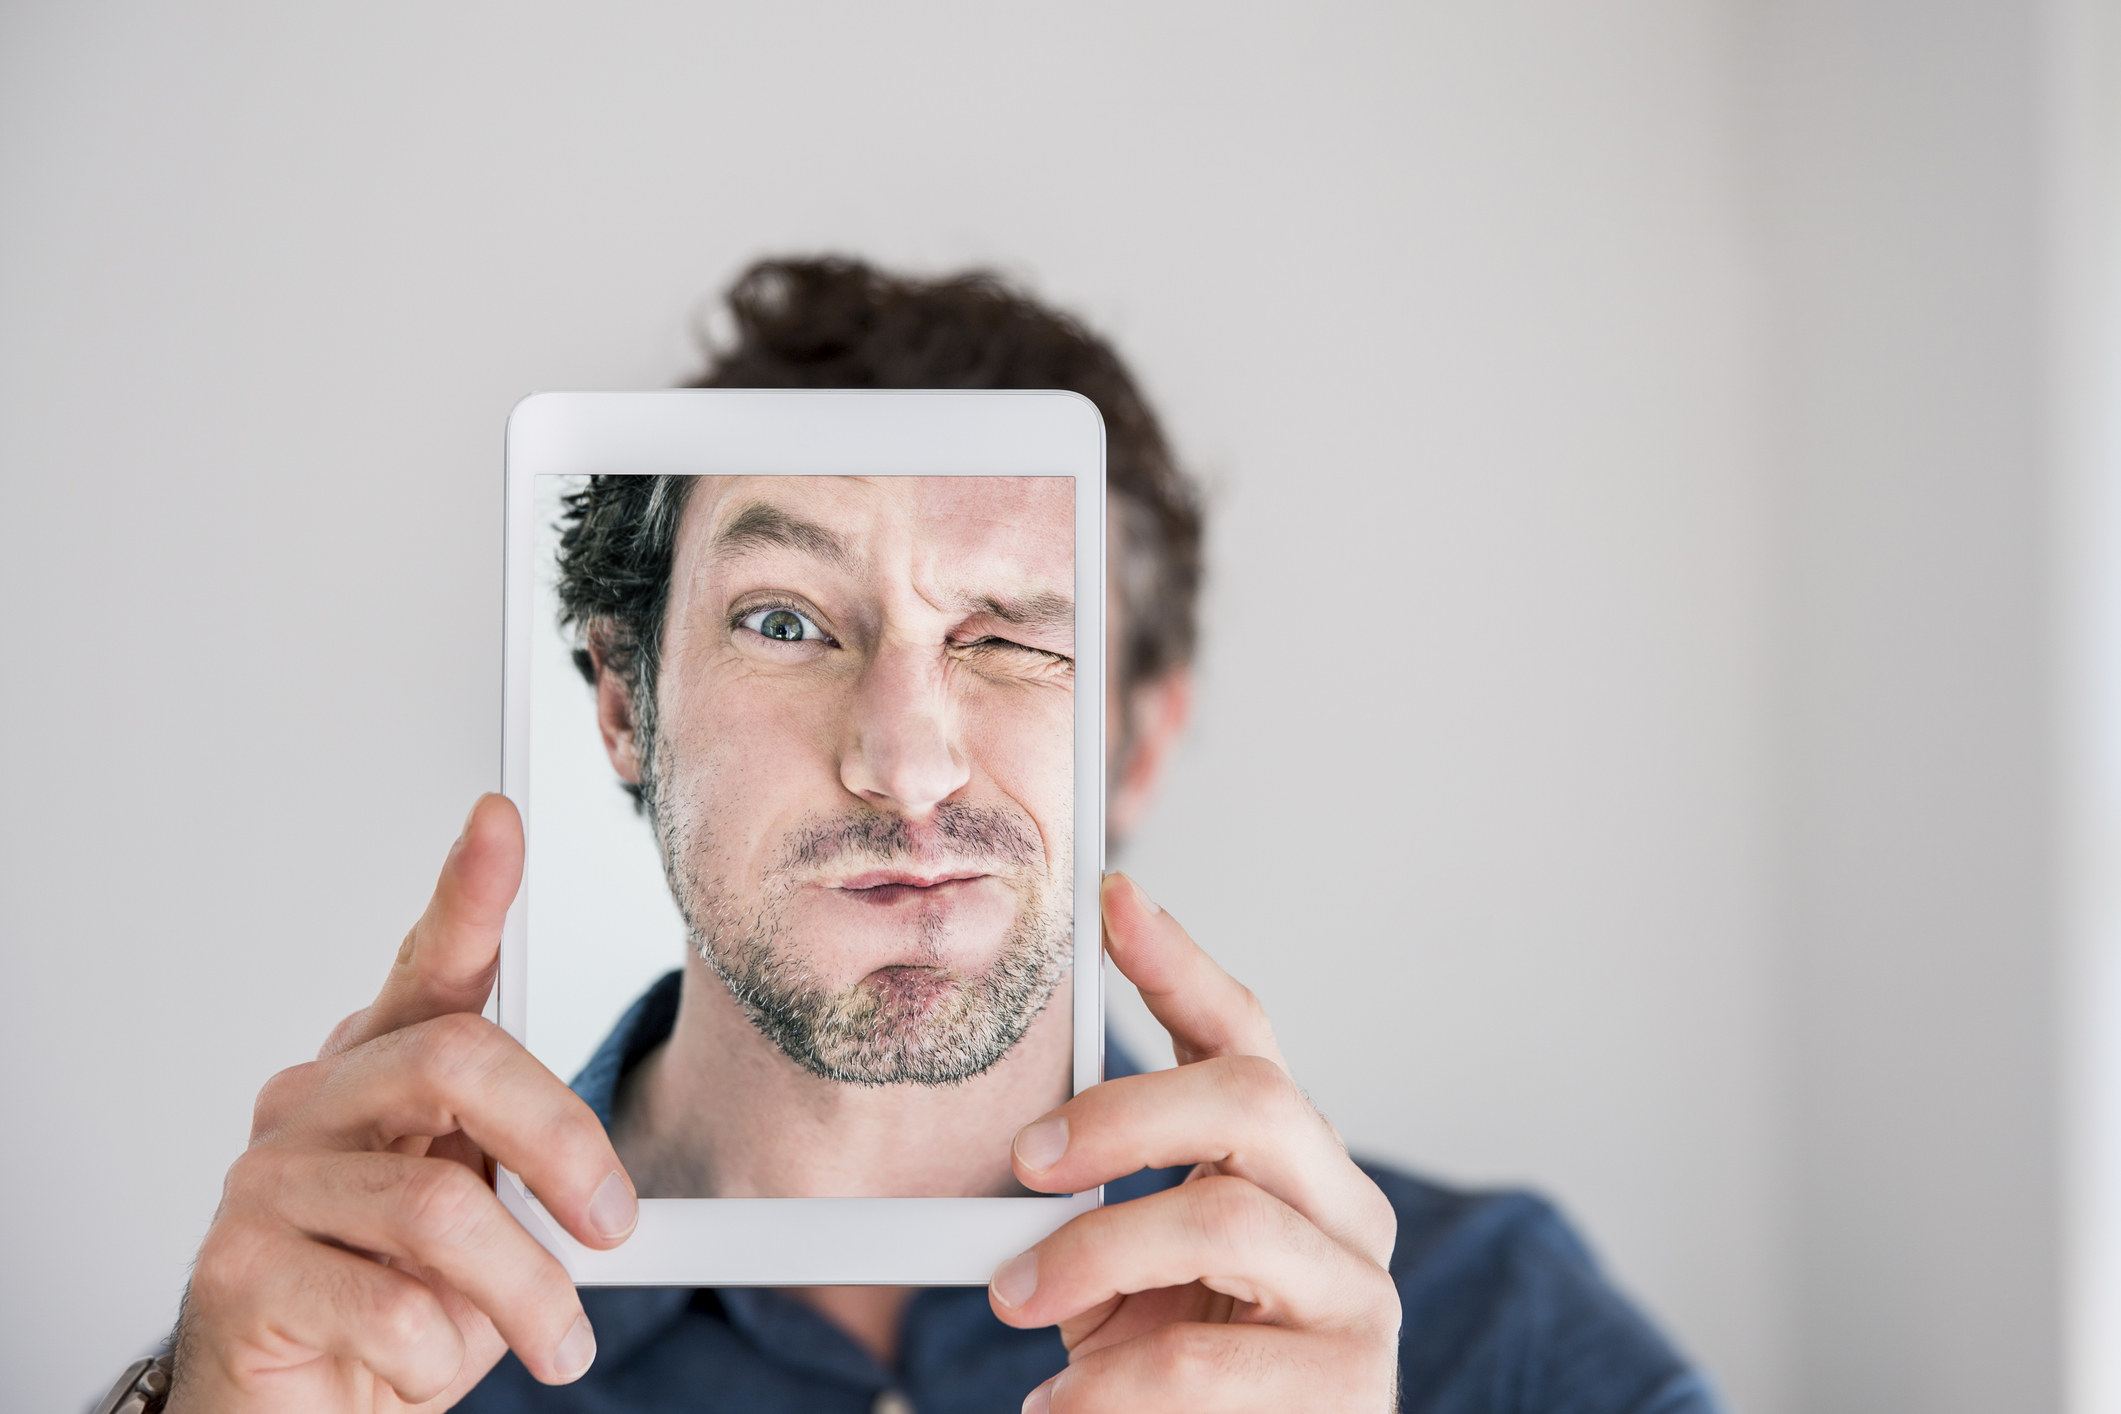 man making faces while taking selfie with iPad